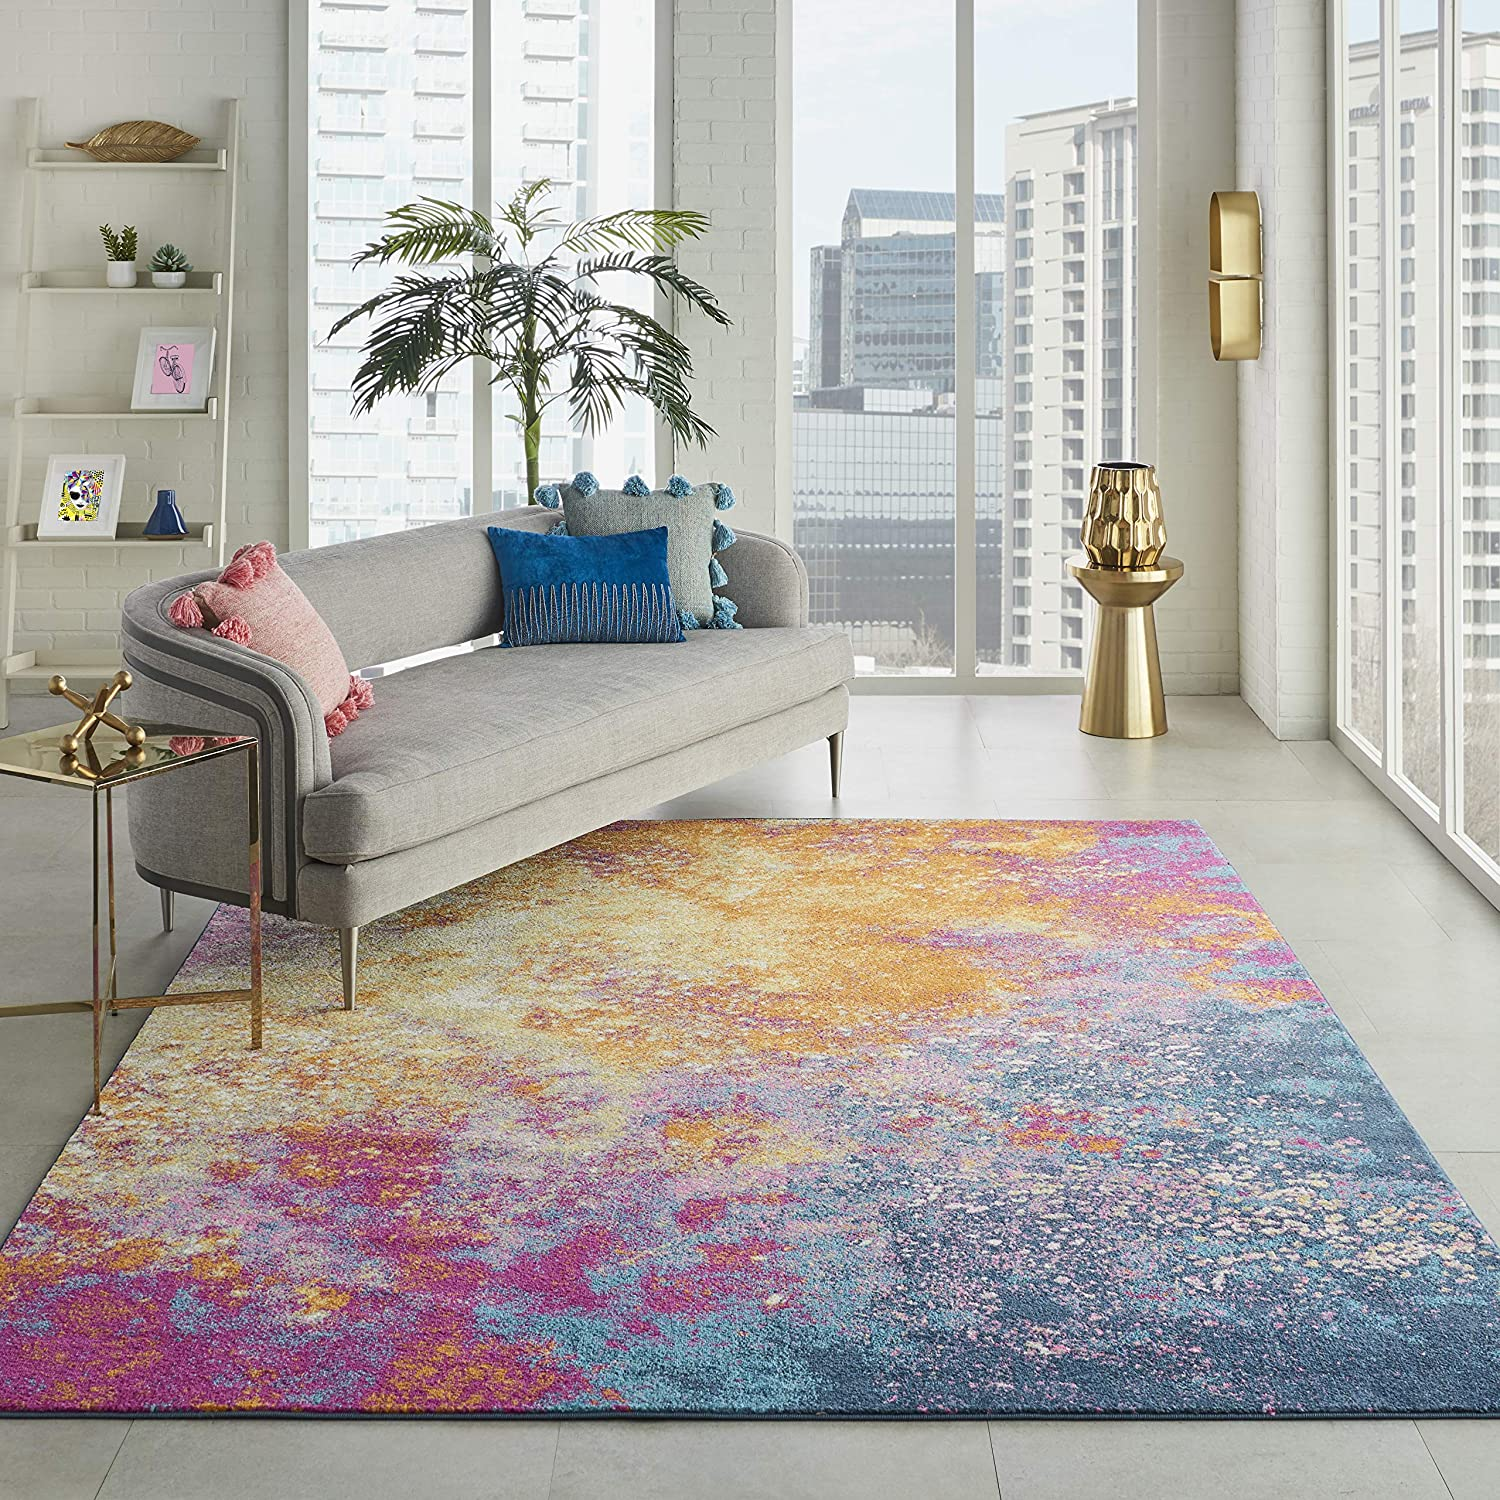 Nourison Passion Modern Abstract Colorful Sunburst Area Rug,